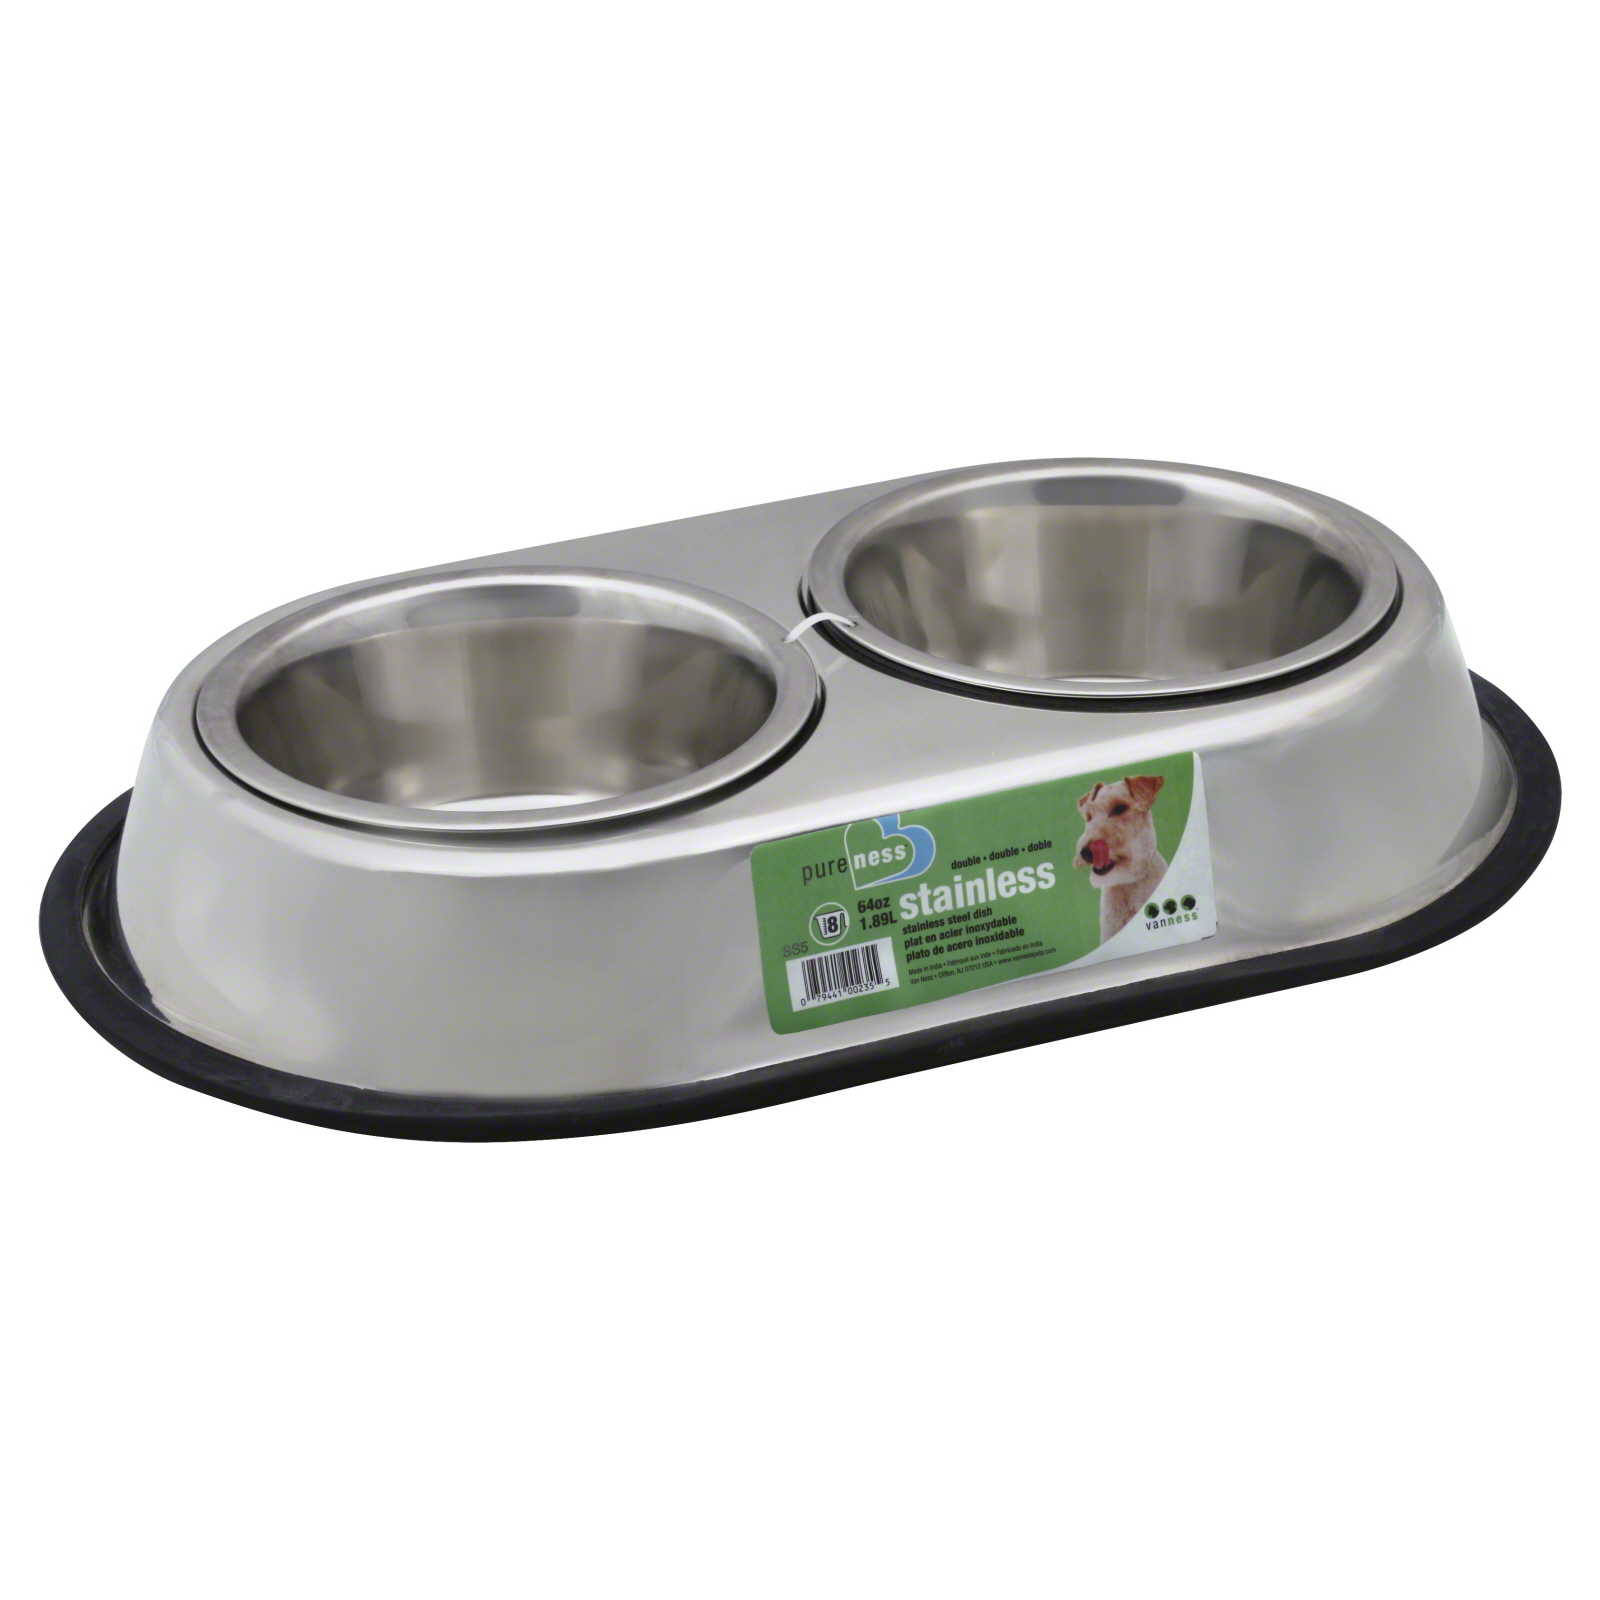 Van Ness Products Stainless Steel Double Dog Dish, Large, 64 oz PartNumber: 08777786000P KsnValue: 5375298 MfgPartNumber: SS5